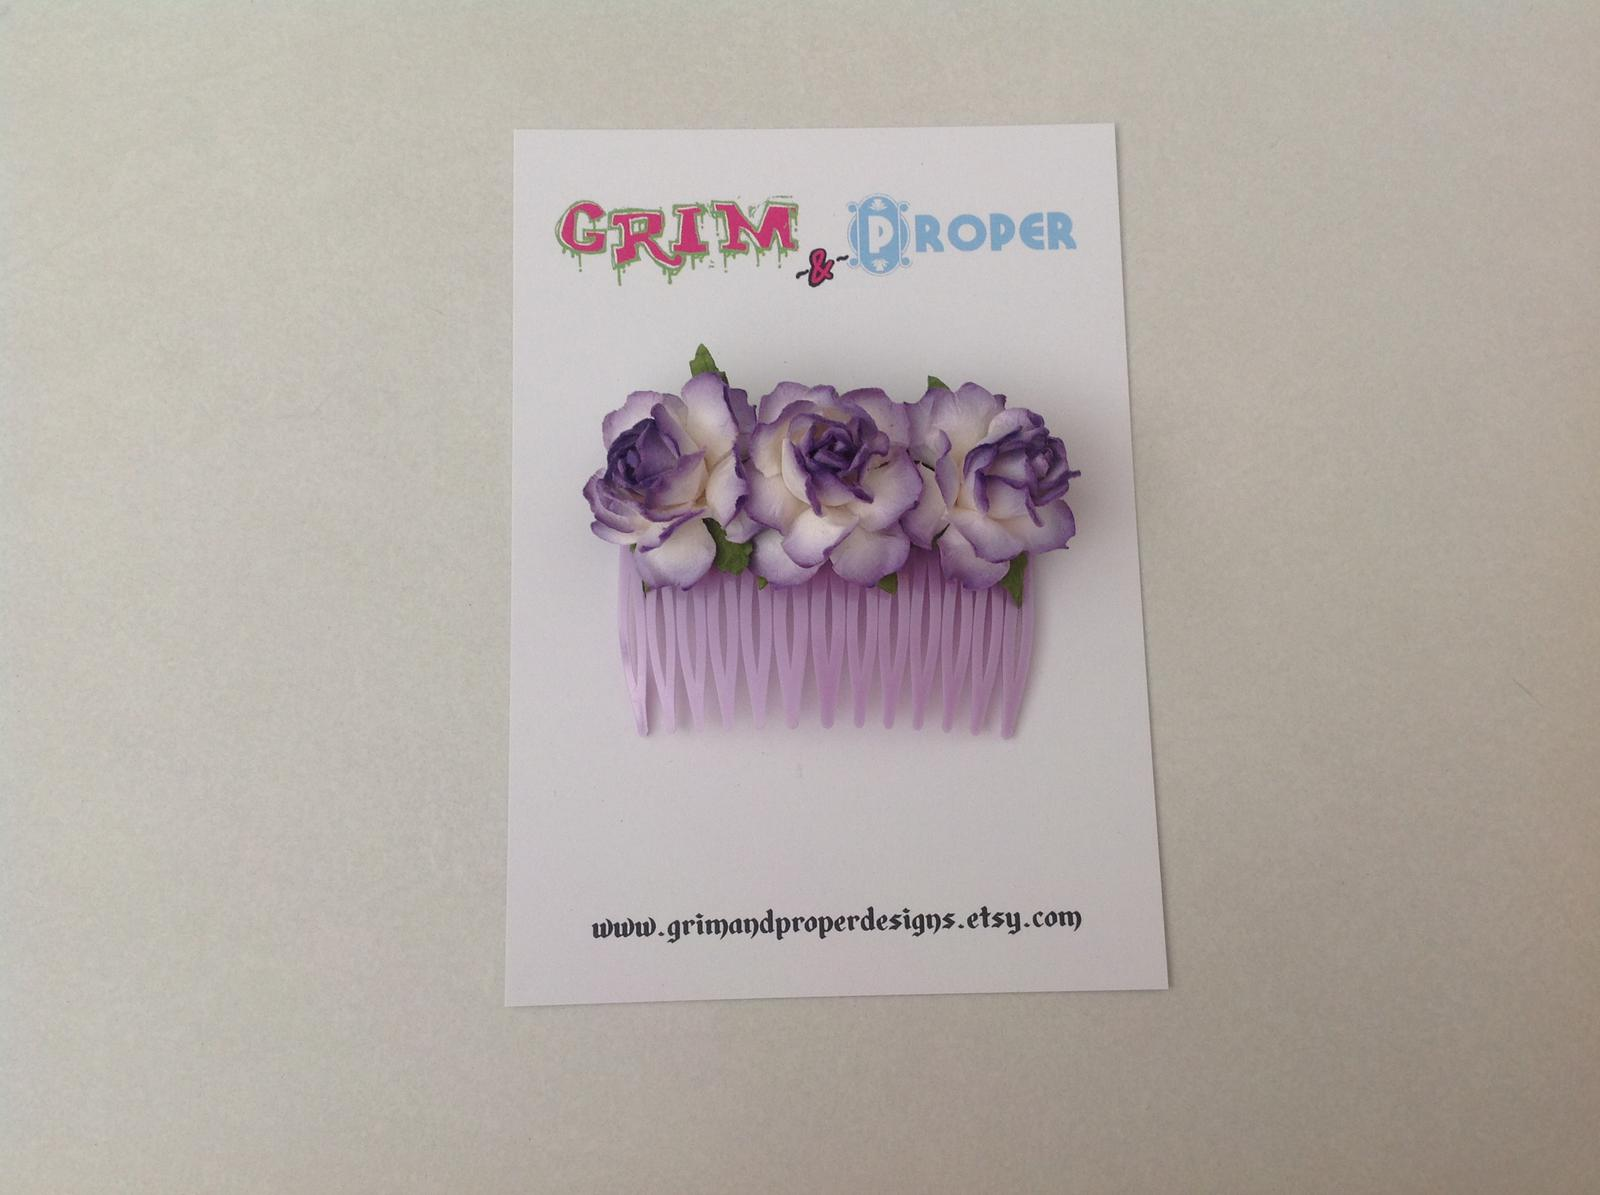 Purple rose hair comb